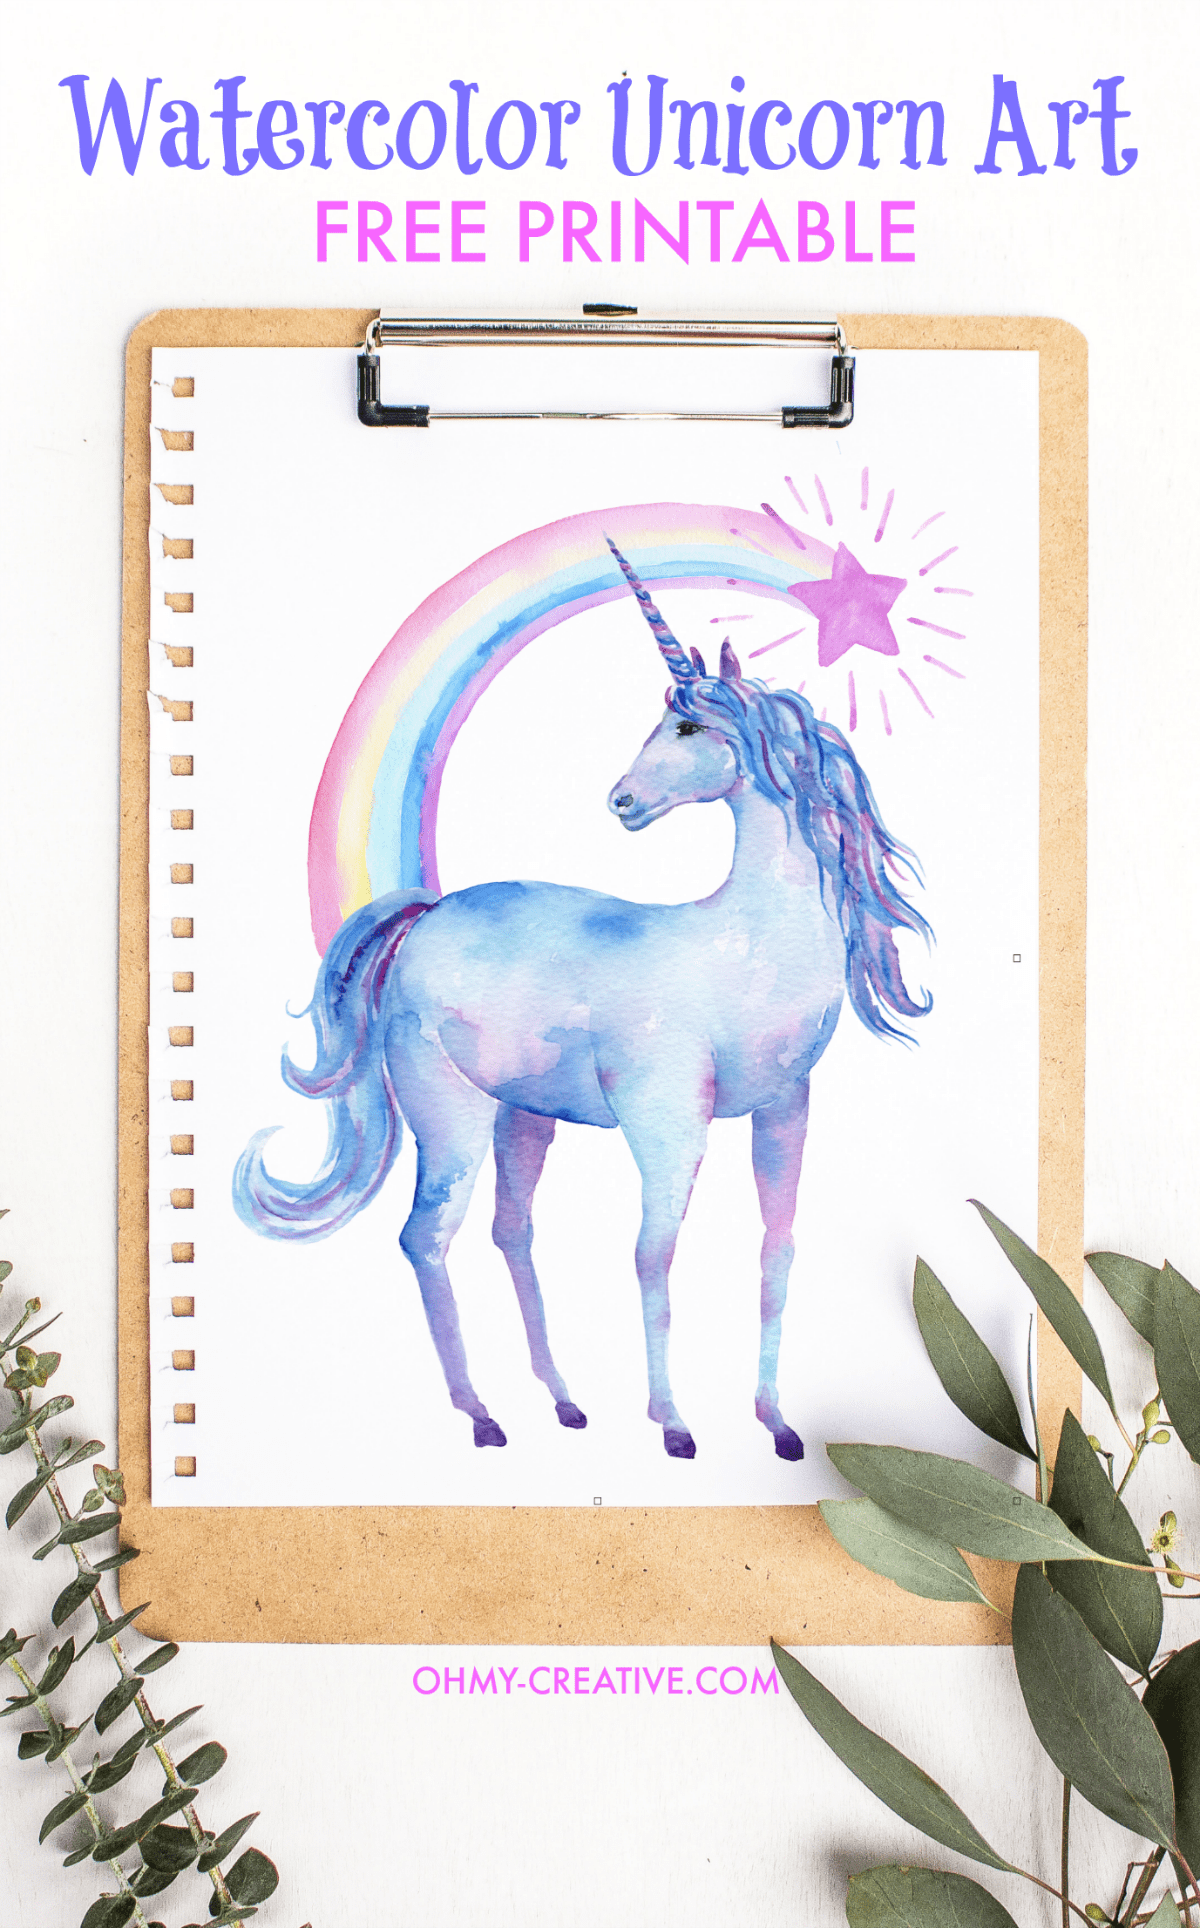 photo regarding Free Printable Unicorn Pictures called Free of charge Printable Watercolor Unicorn Photos - Oh My Innovative